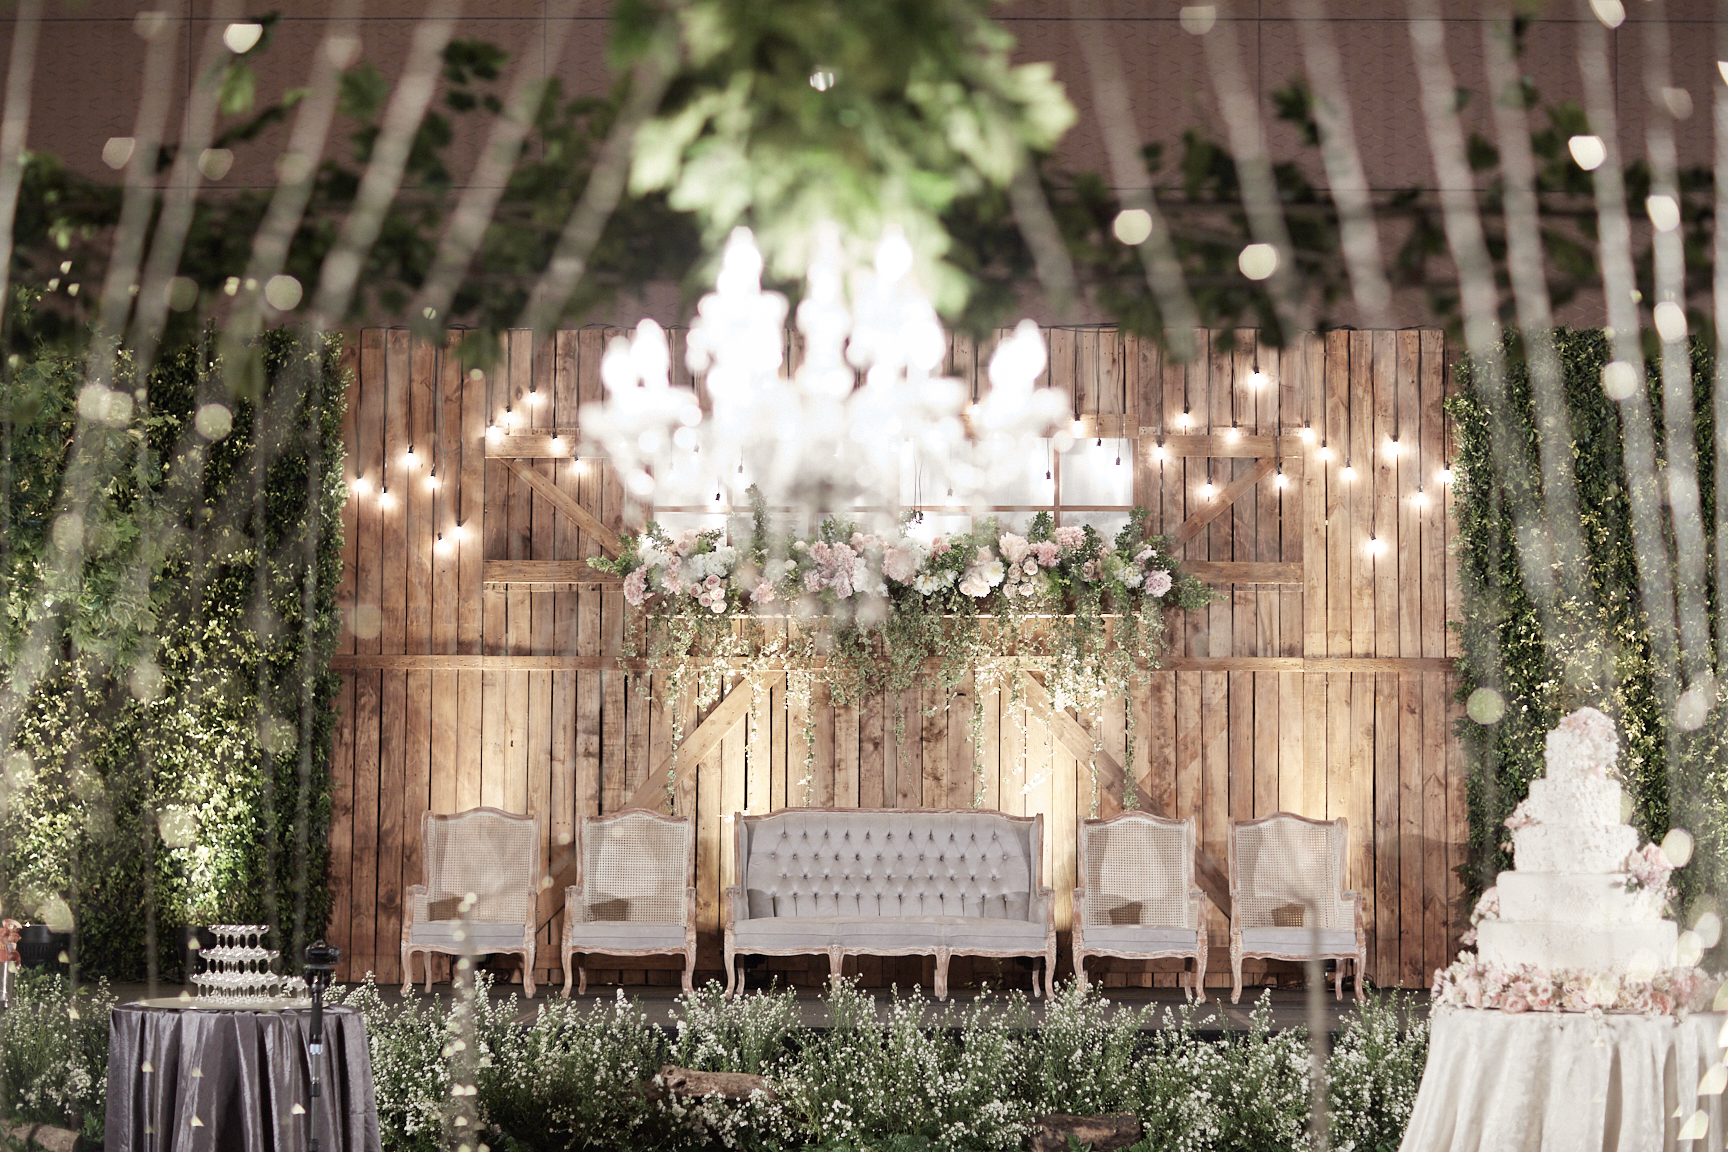 Cosa design decor wedding decoration lighting in jakarta cosa design decor wedding decoration lighting in jakarta bridestory junglespirit Images